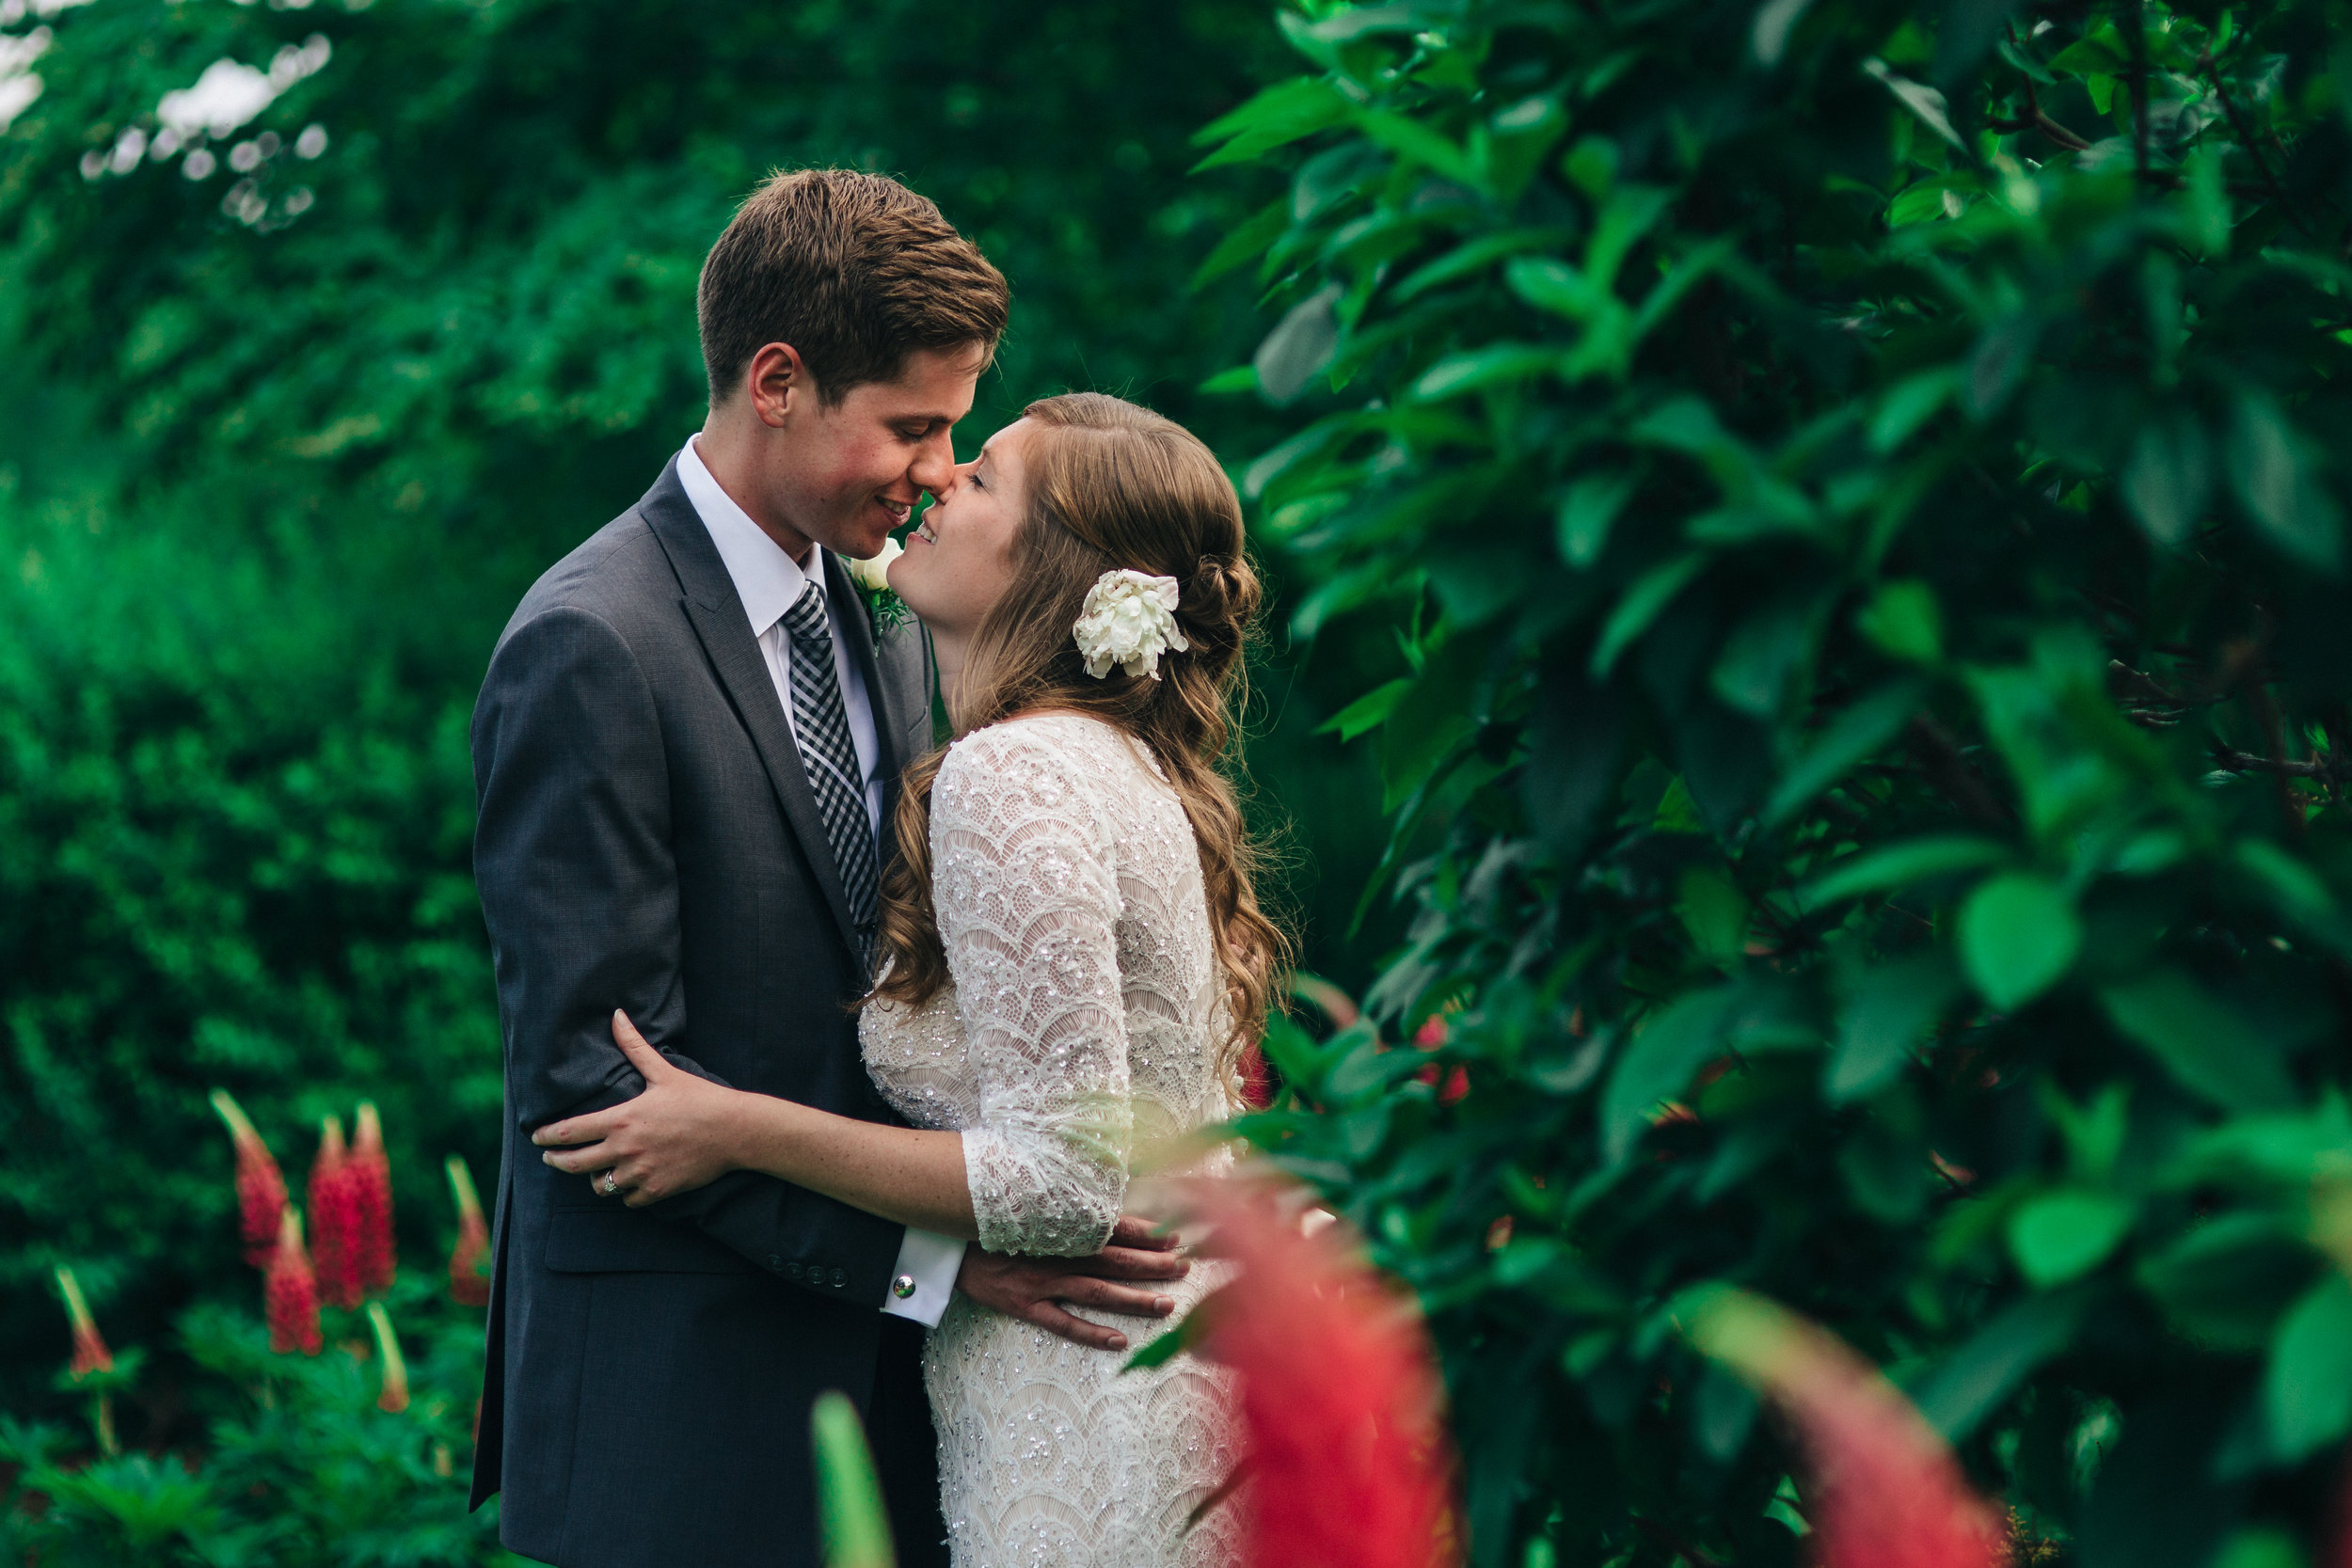 Wedding photography of bride and groom in Cleveland, Ohio.